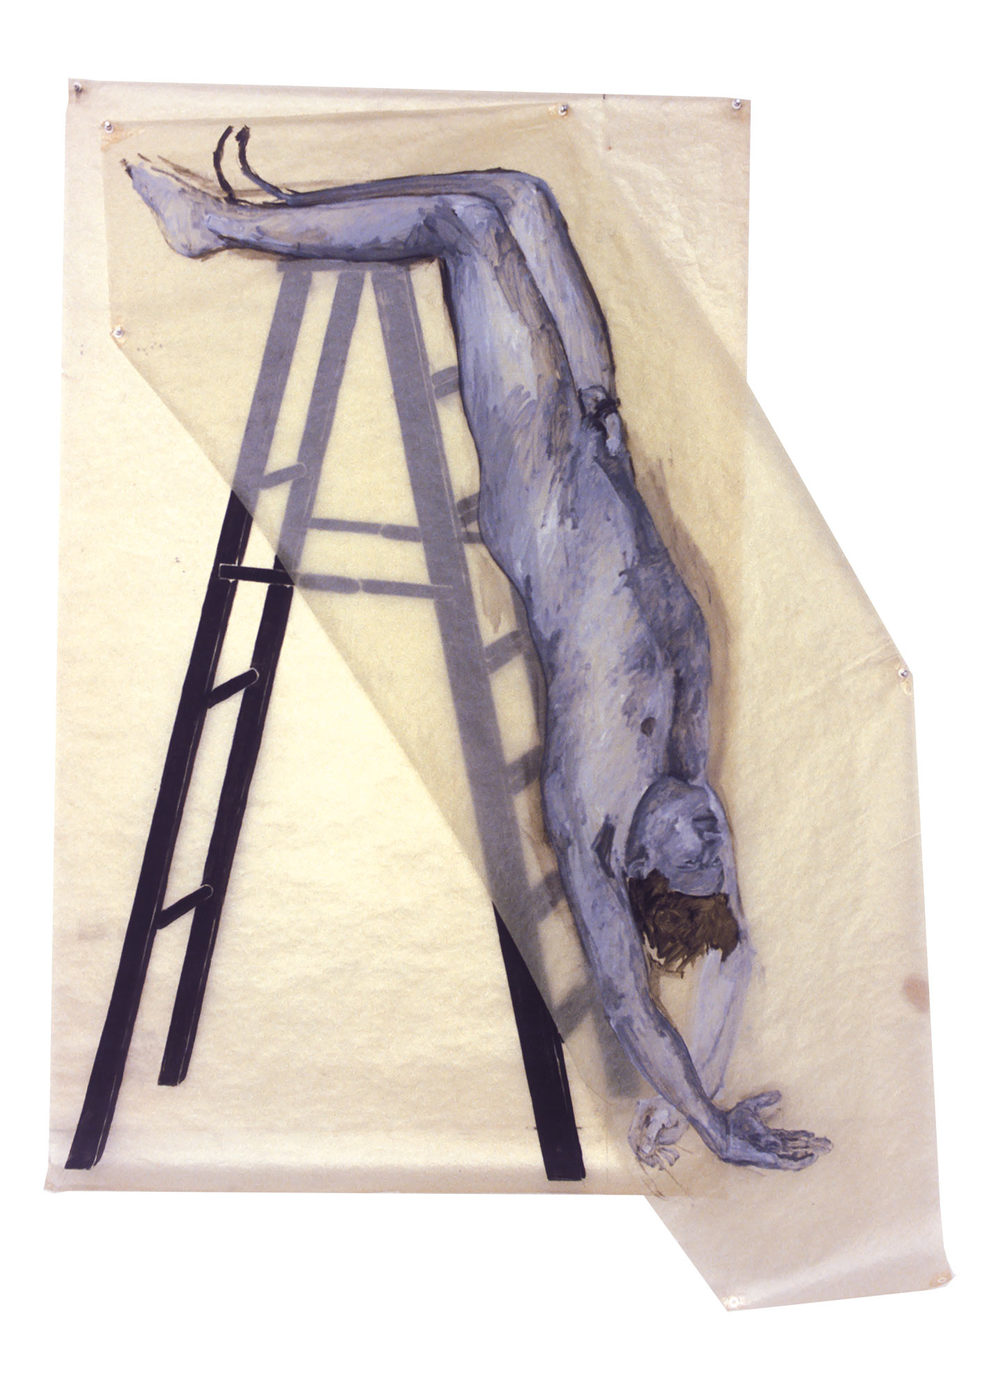 Untitled (Man on Ladder), 1979. Oil on Glassine. 72 x 58 in. (183 x 147 cm.)